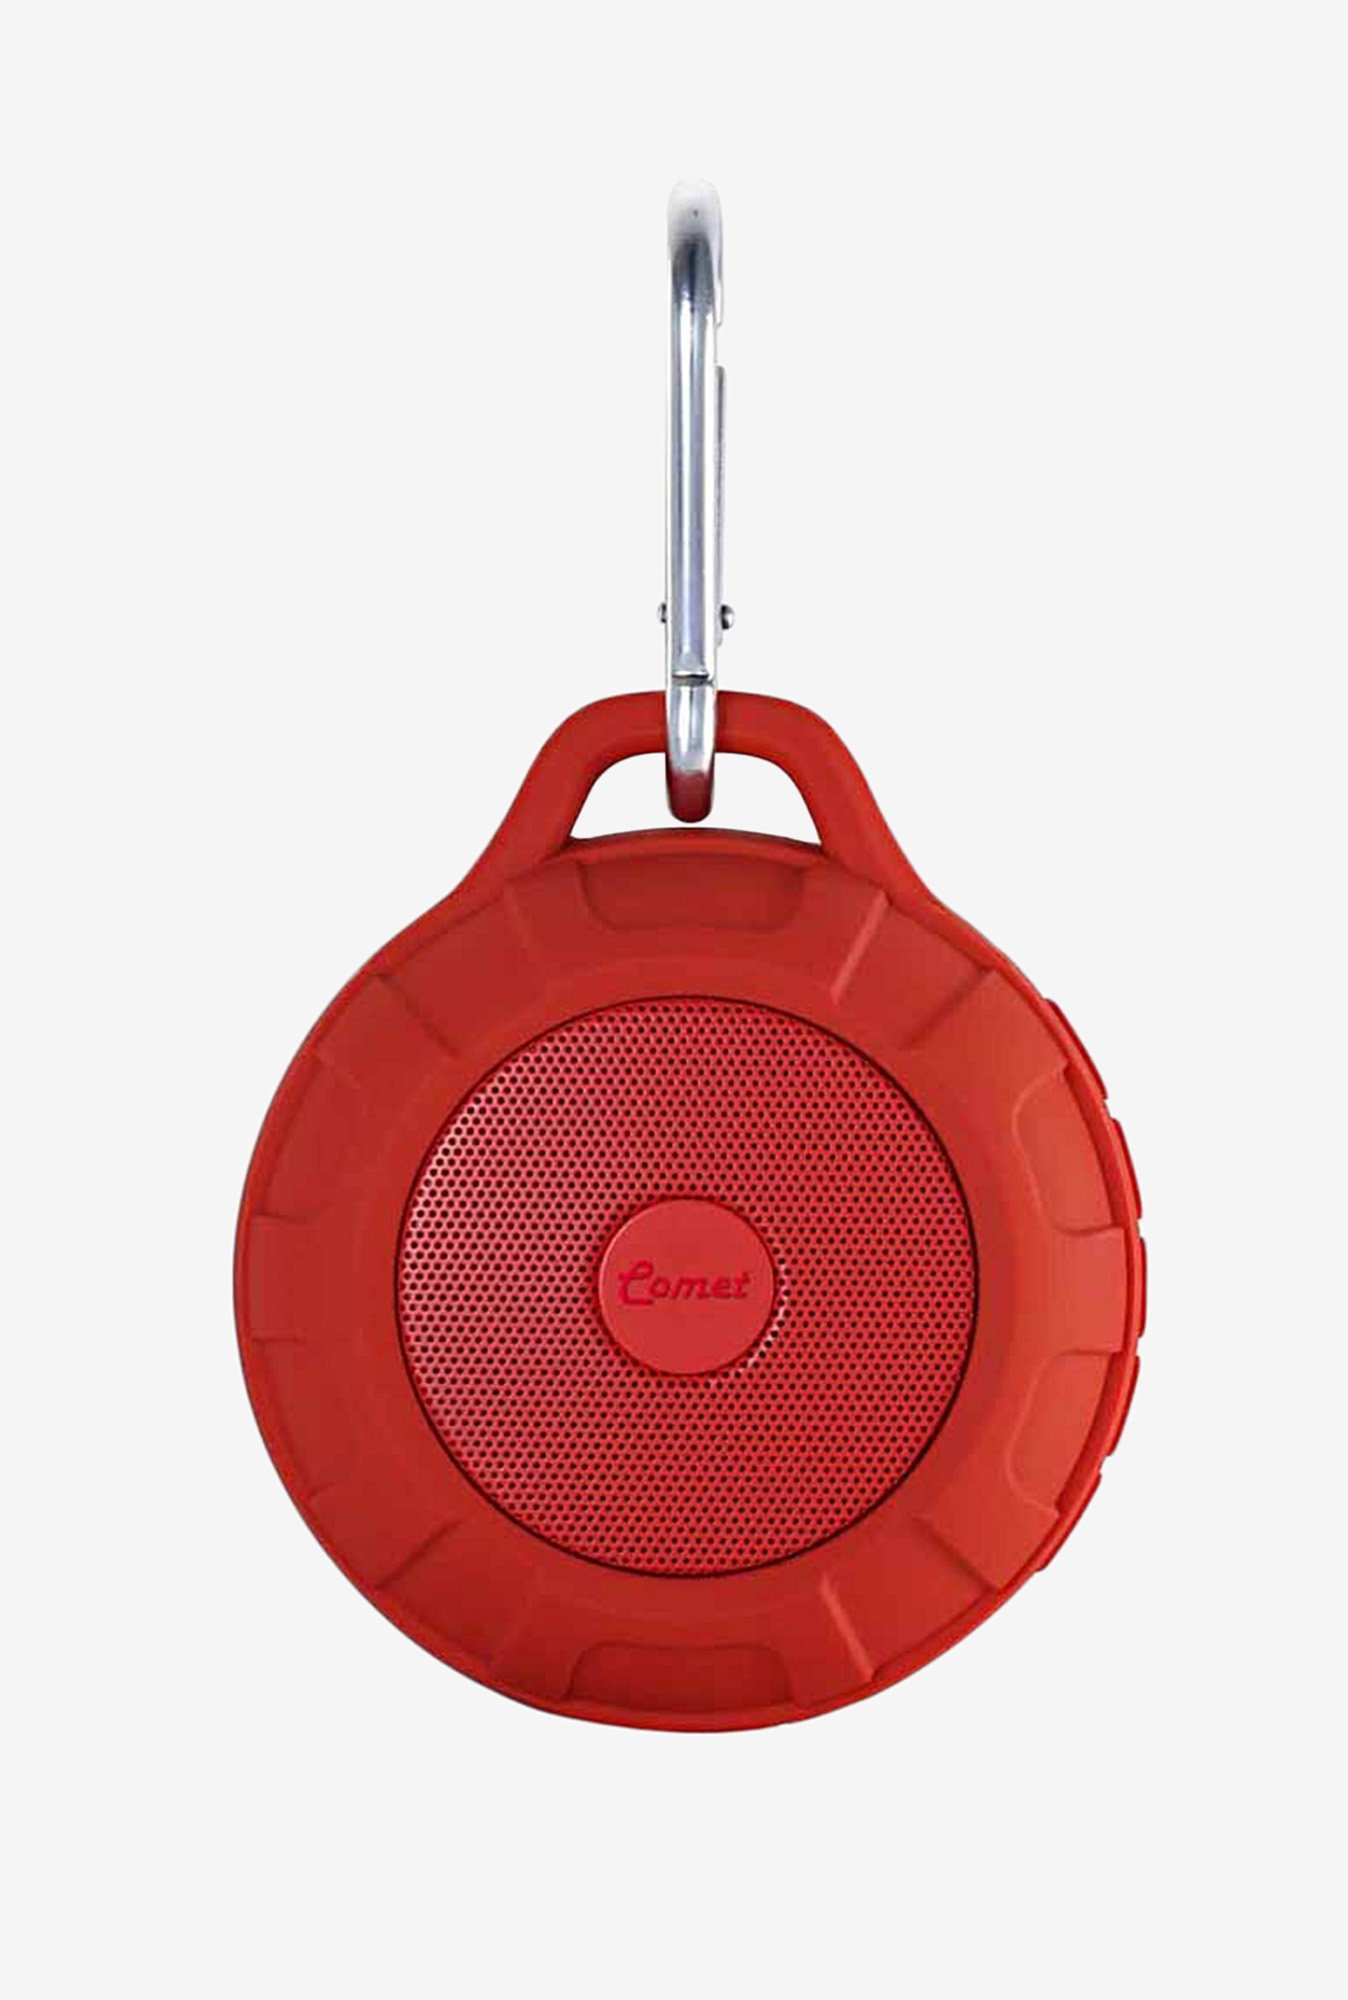 Portronics Comet POR 194 Bluetooth Speaker Red